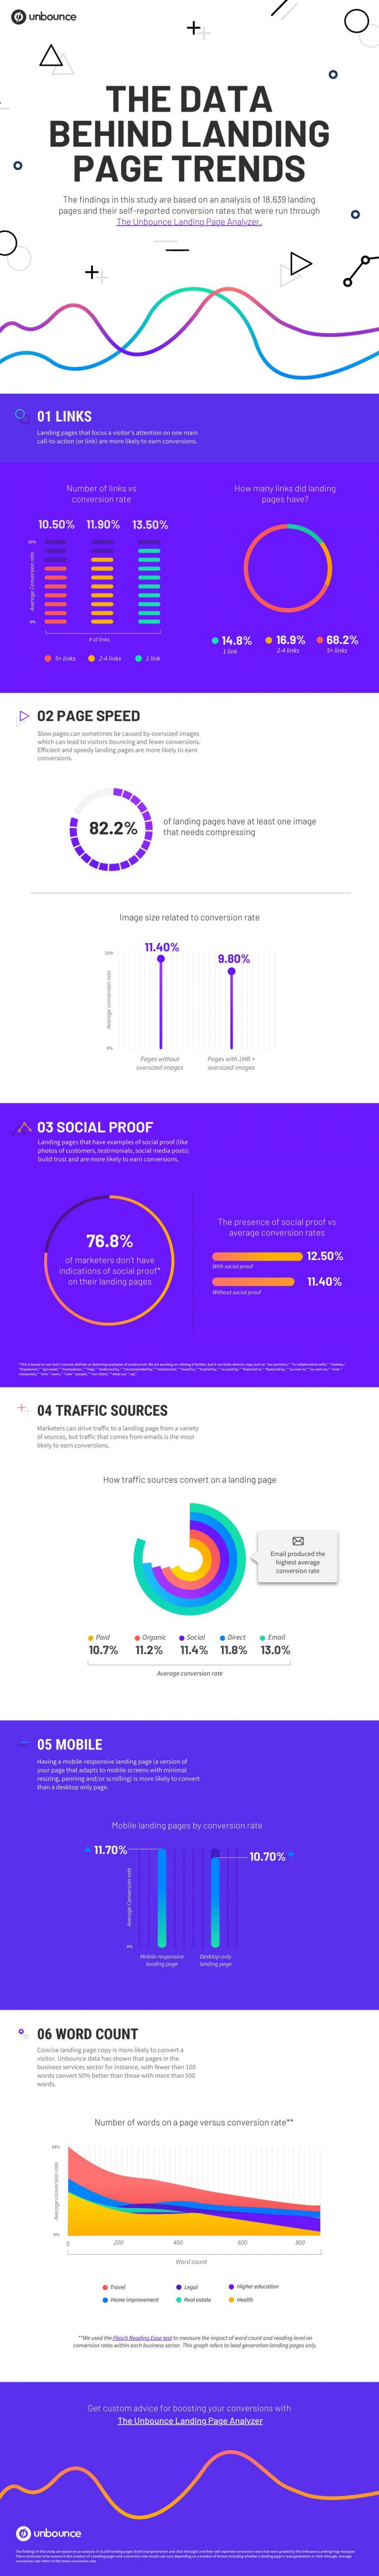 Infographic-–-The-Data-Behind-Landing-Page-Trends-in-2018